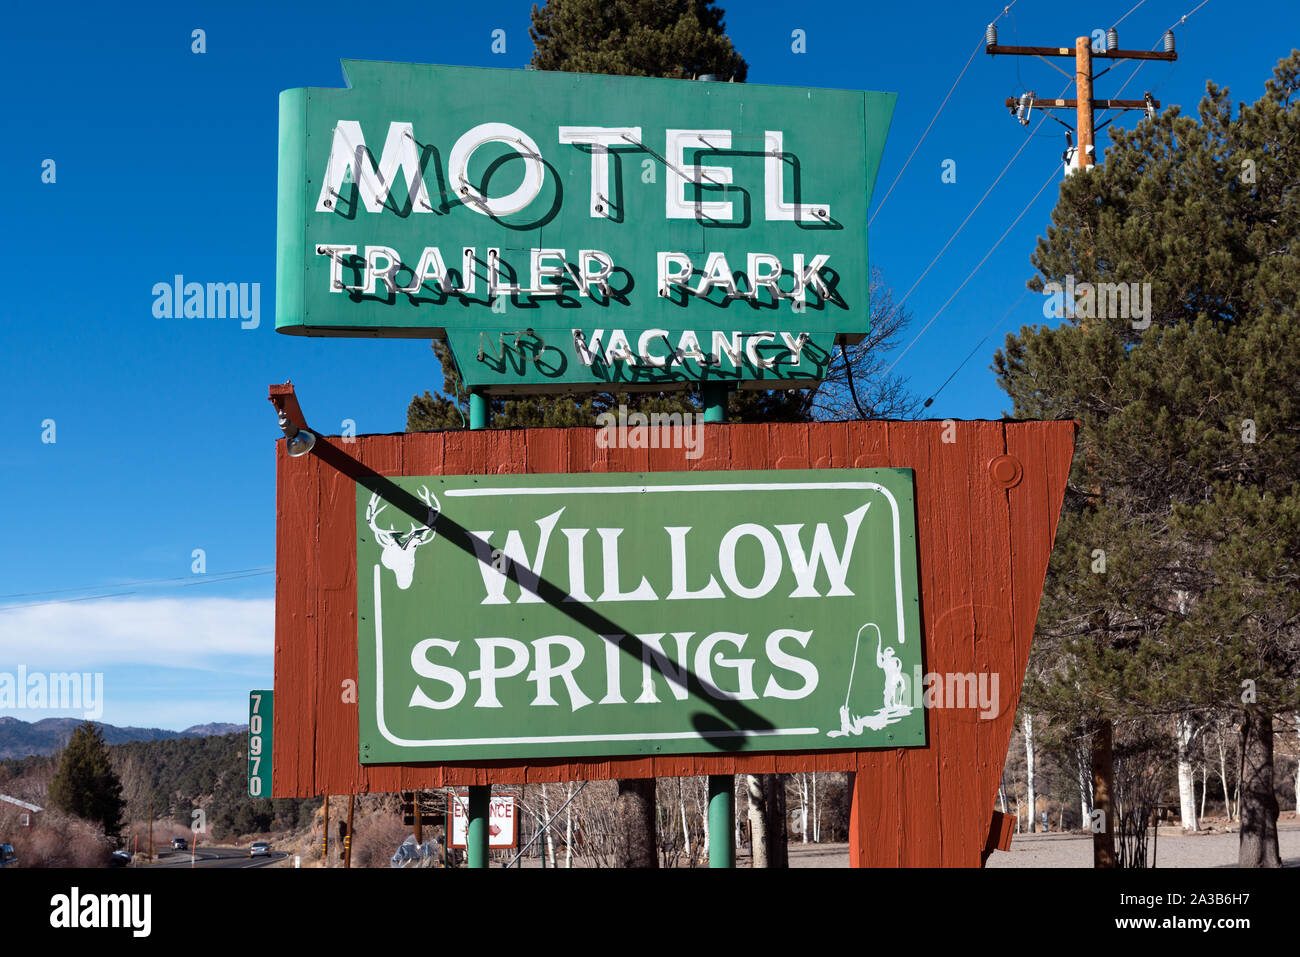 Sign for Willow Springs Motel and Trailer park in Bridgeport, California Stock Photo